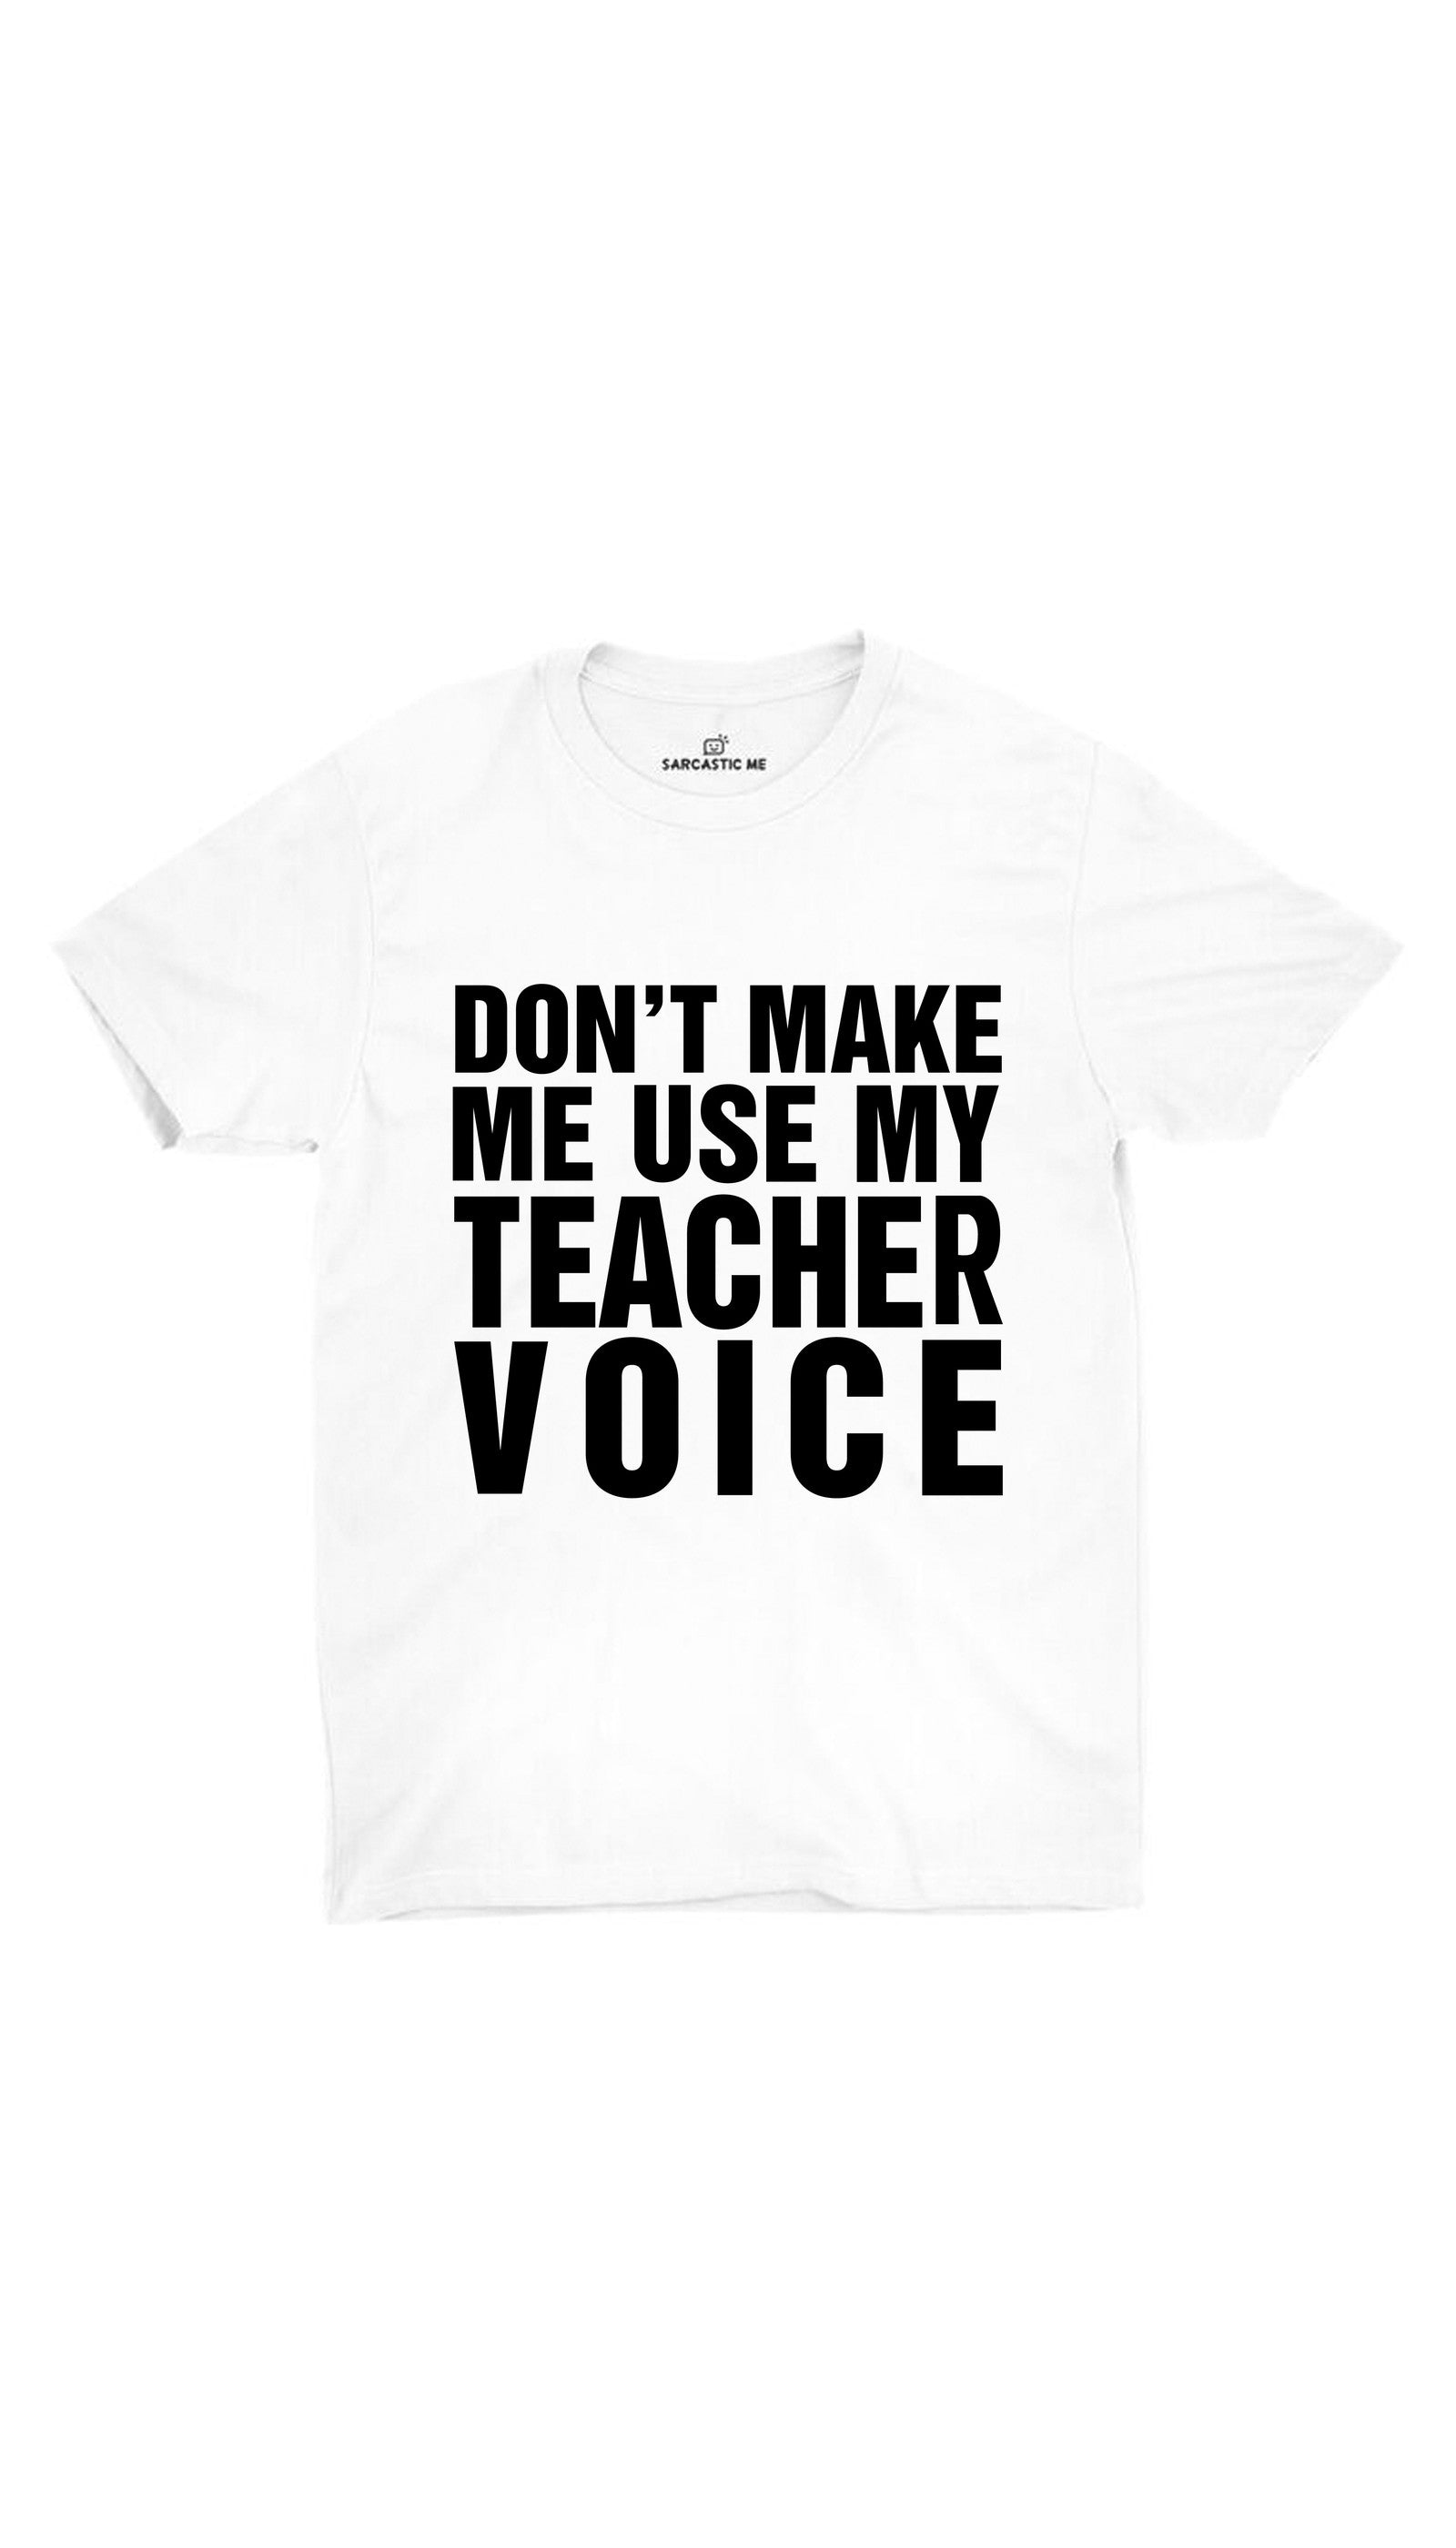 Don't Make Me Use My Teacher Voice White Unisex T-shirt | Sarcastic ME